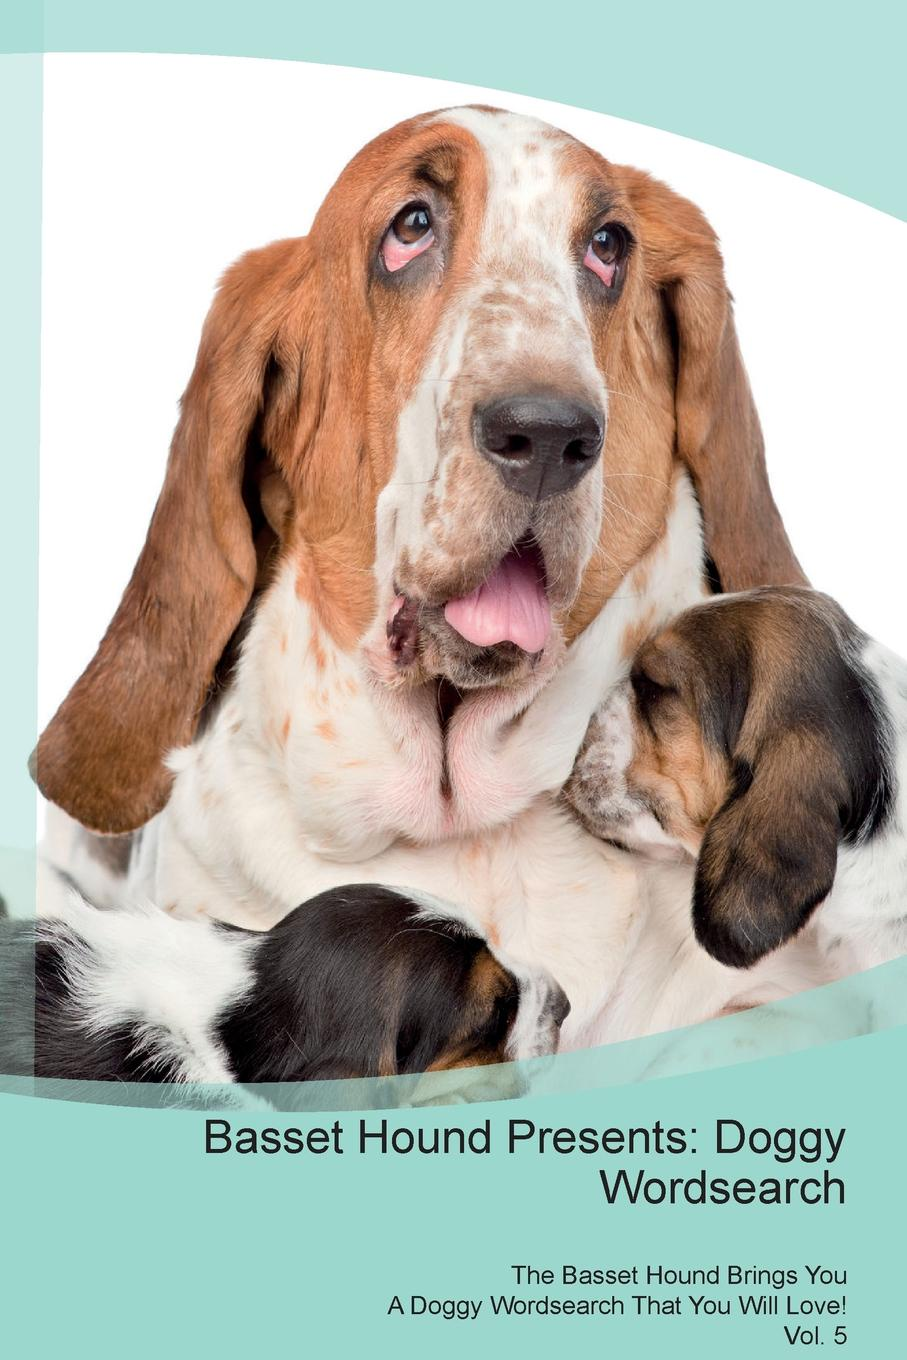 Doggy Puzzles Basset Hound Presents. Wordsearch The Brings You A That Will Love! Vol. 5